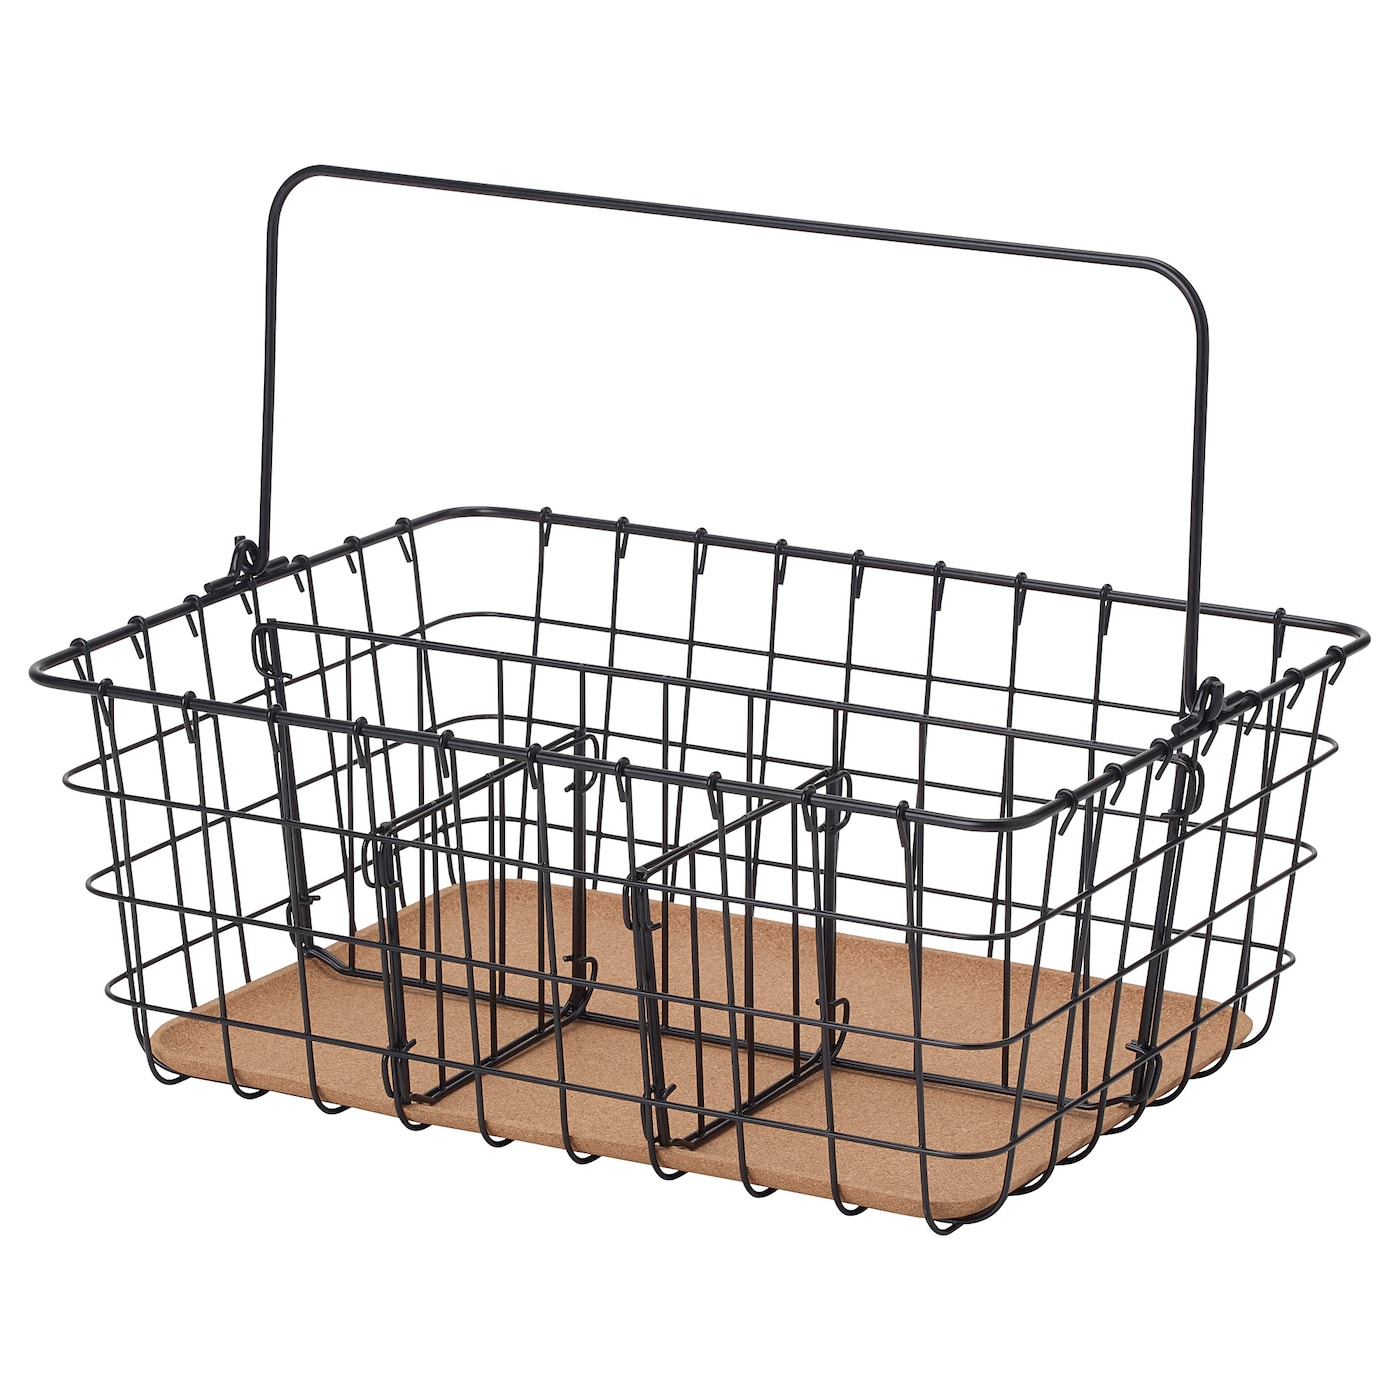 IKEA PLEJA wire basket with handle The plastic feet protect the surface against scratching.